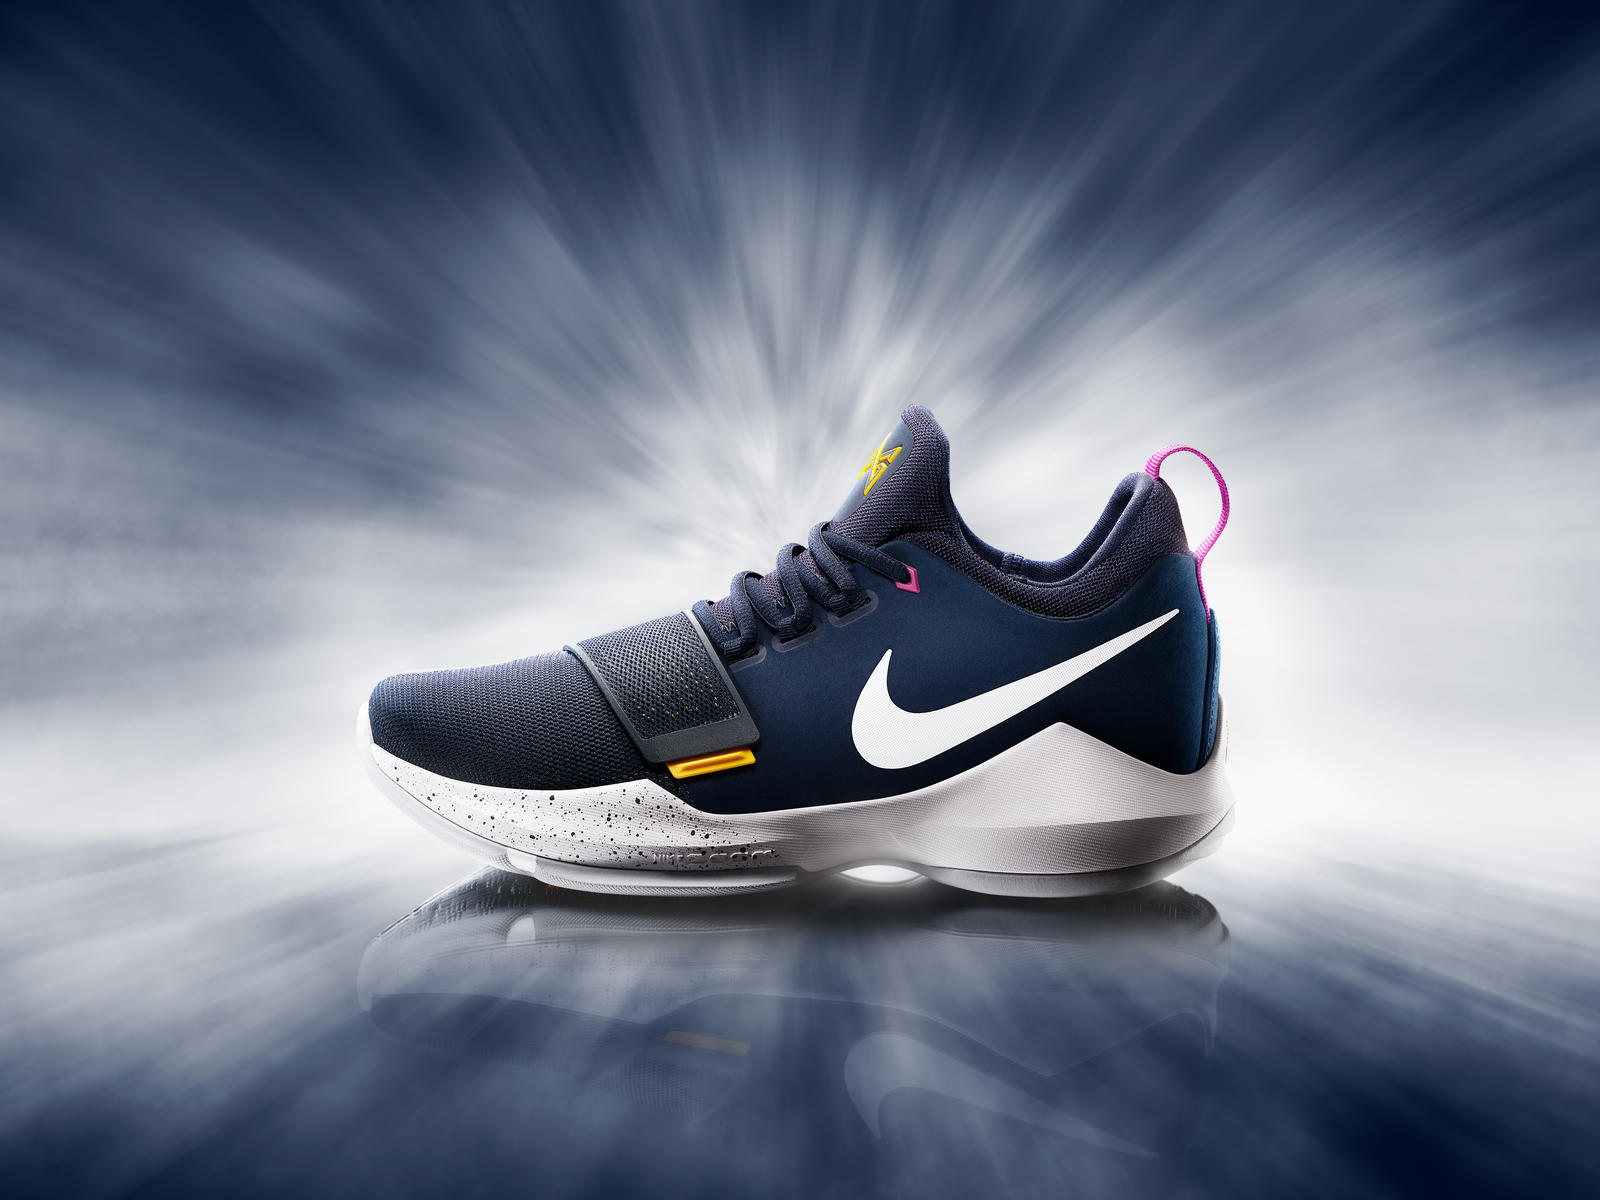 ee9e61c7a397 10 Things You Don t Know About the PG1 7. Tailored to Paul George s ...